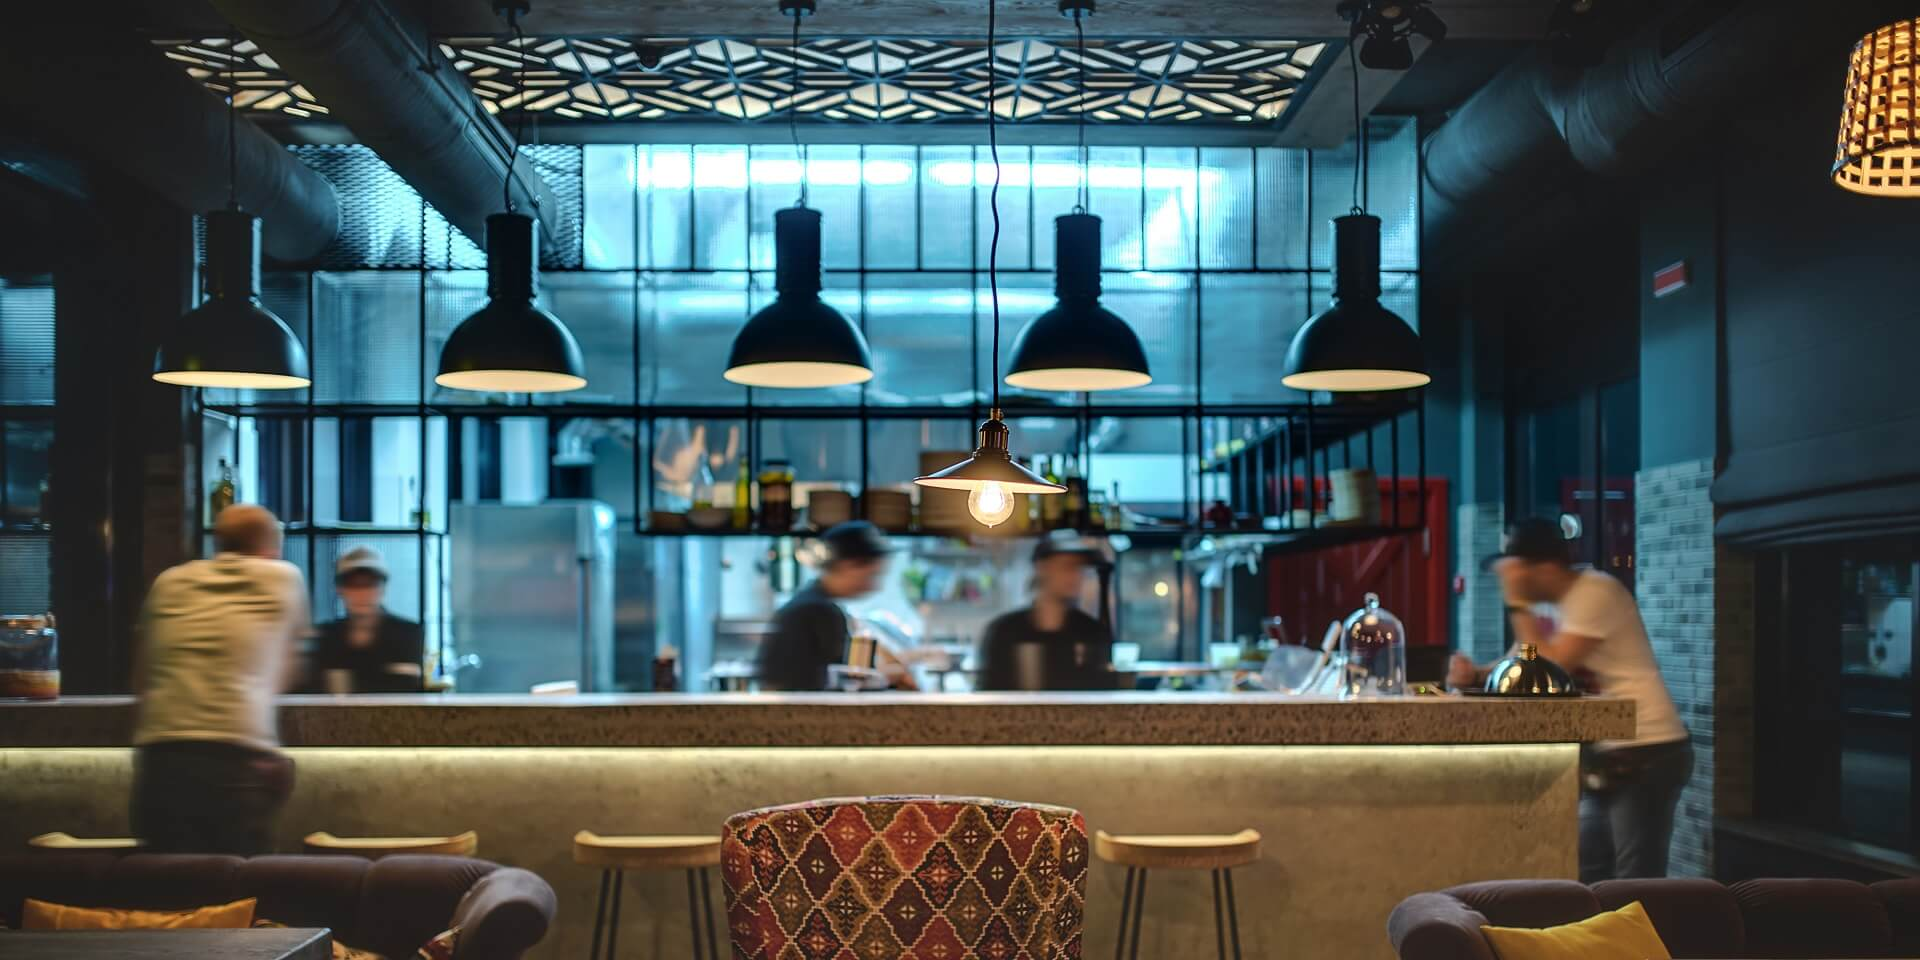 Image of article 'Can Bars and Restaurants Use Contactless Tech to Safely Reopen'